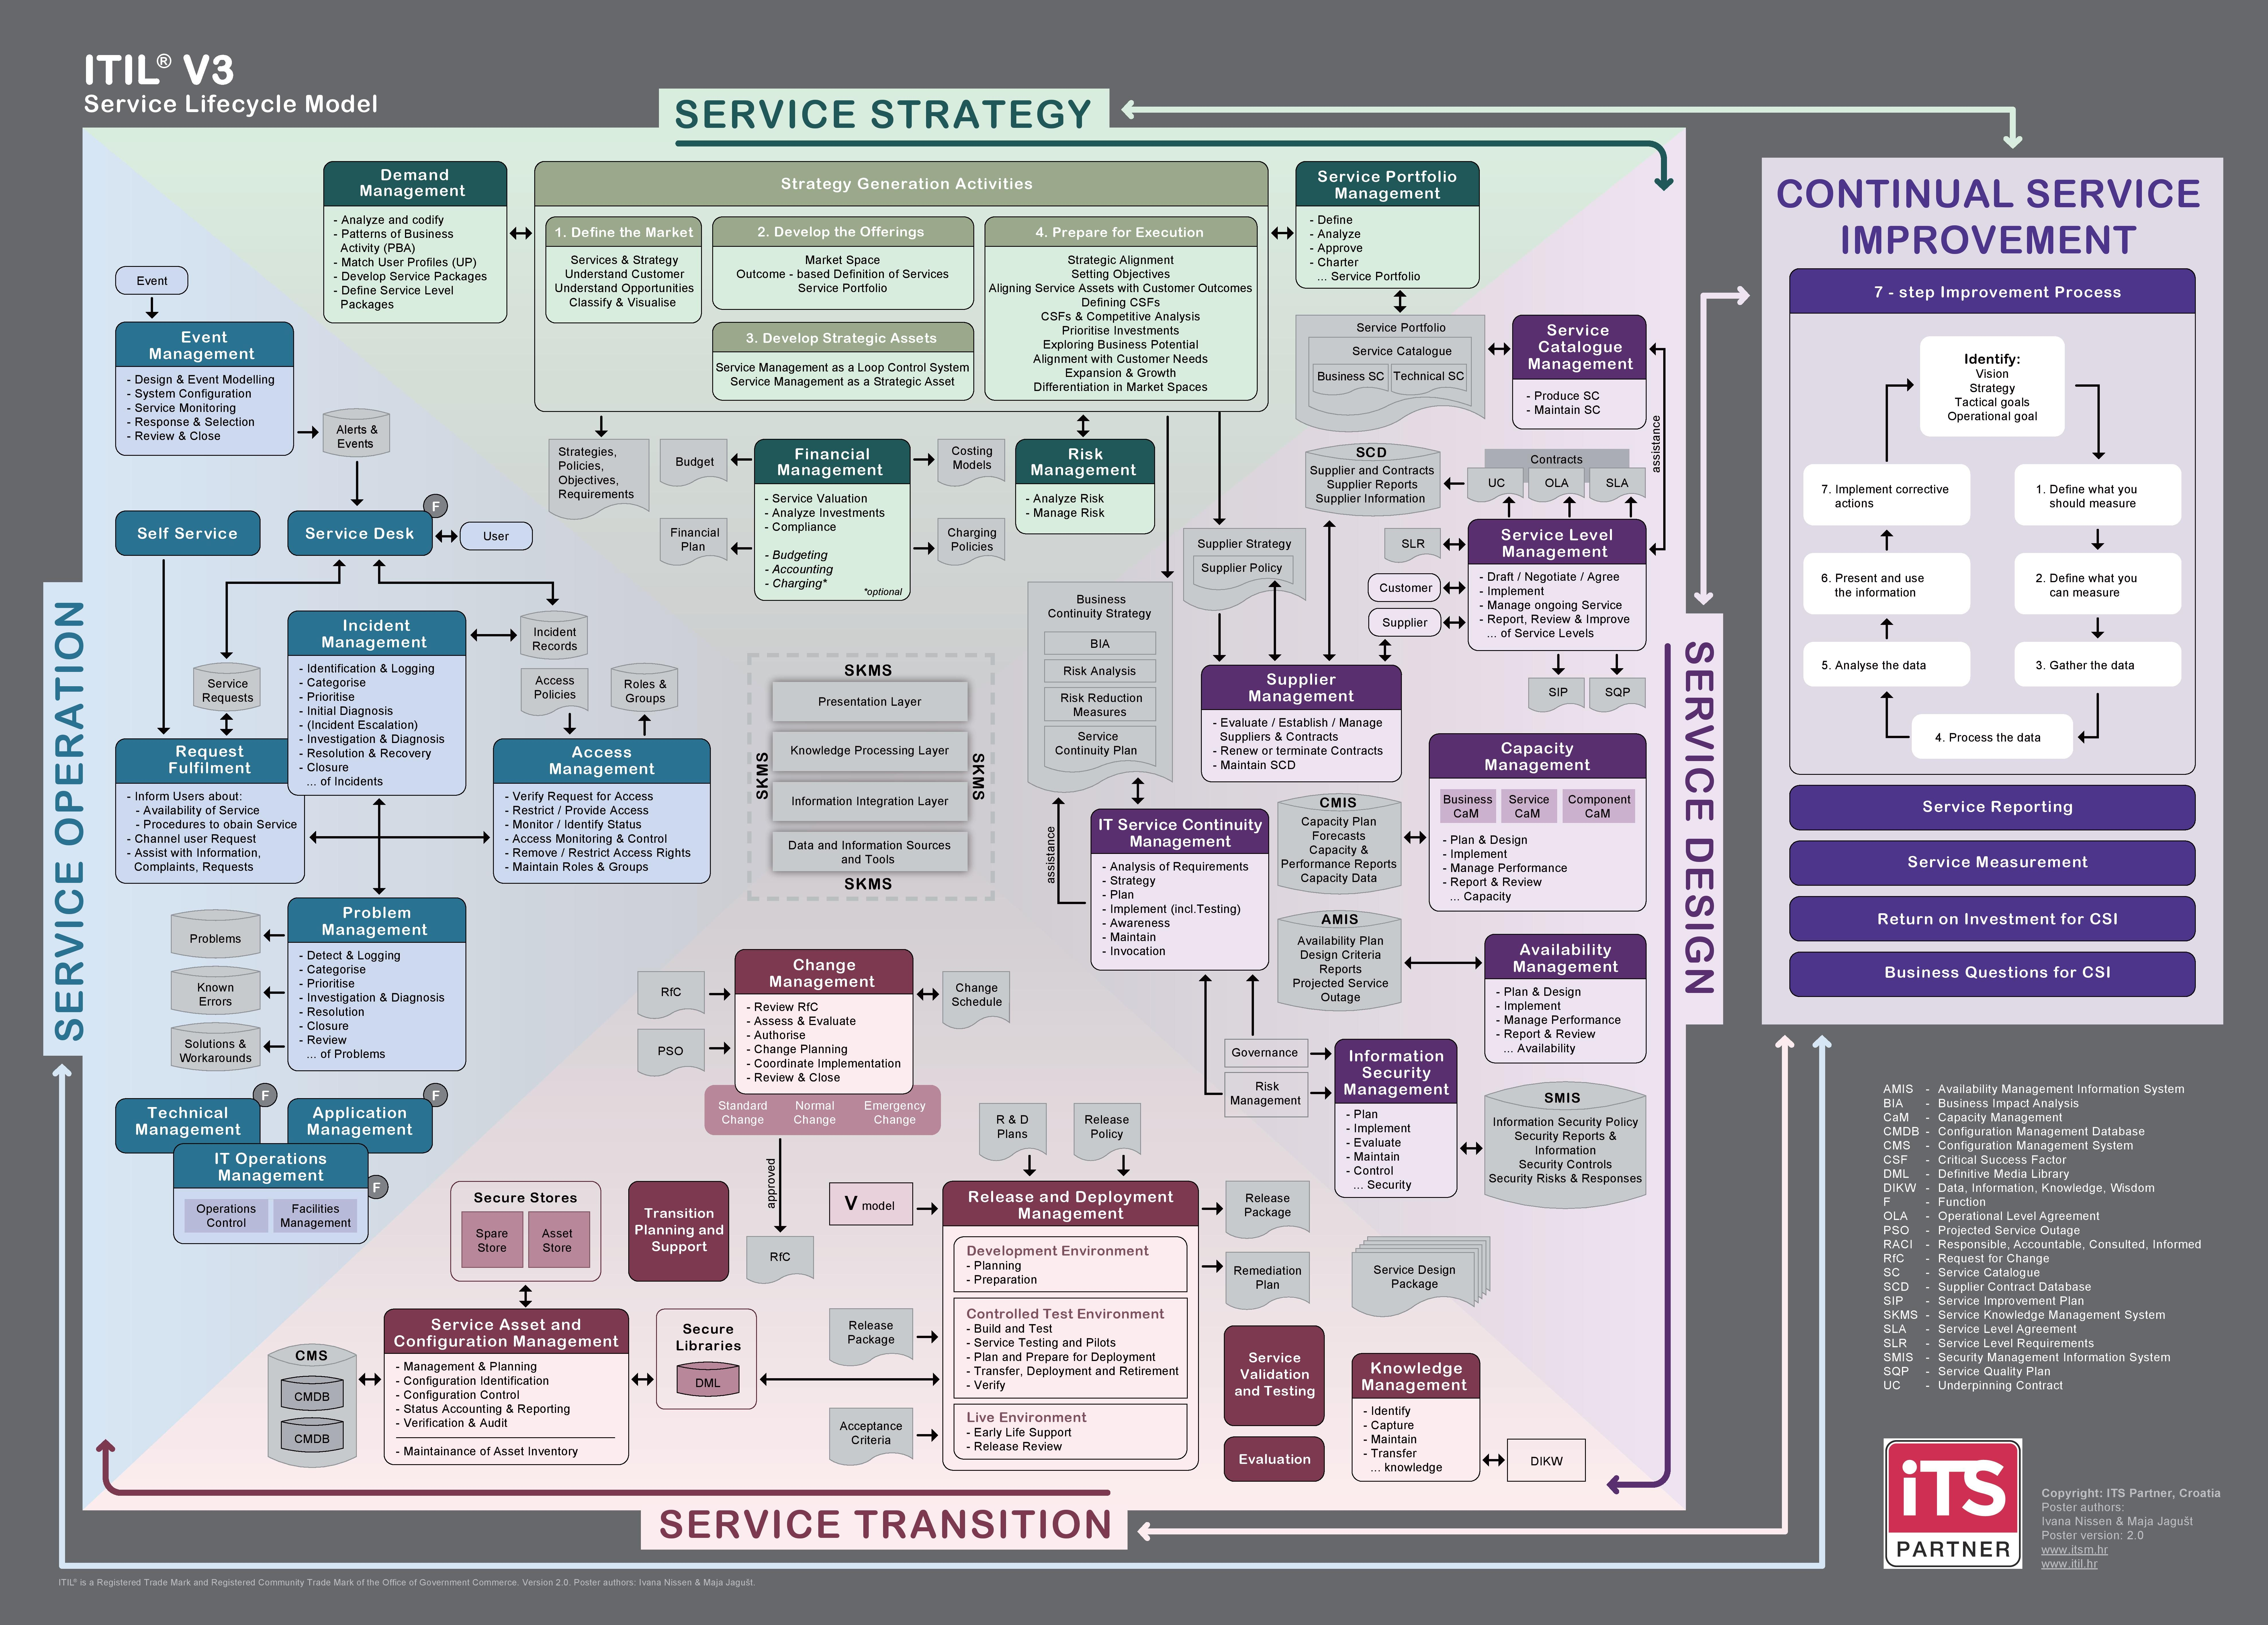 Itilv3 service lifecycle model its partner itil pinterest itilv3 service lifecycle model its partner pooptronica Images